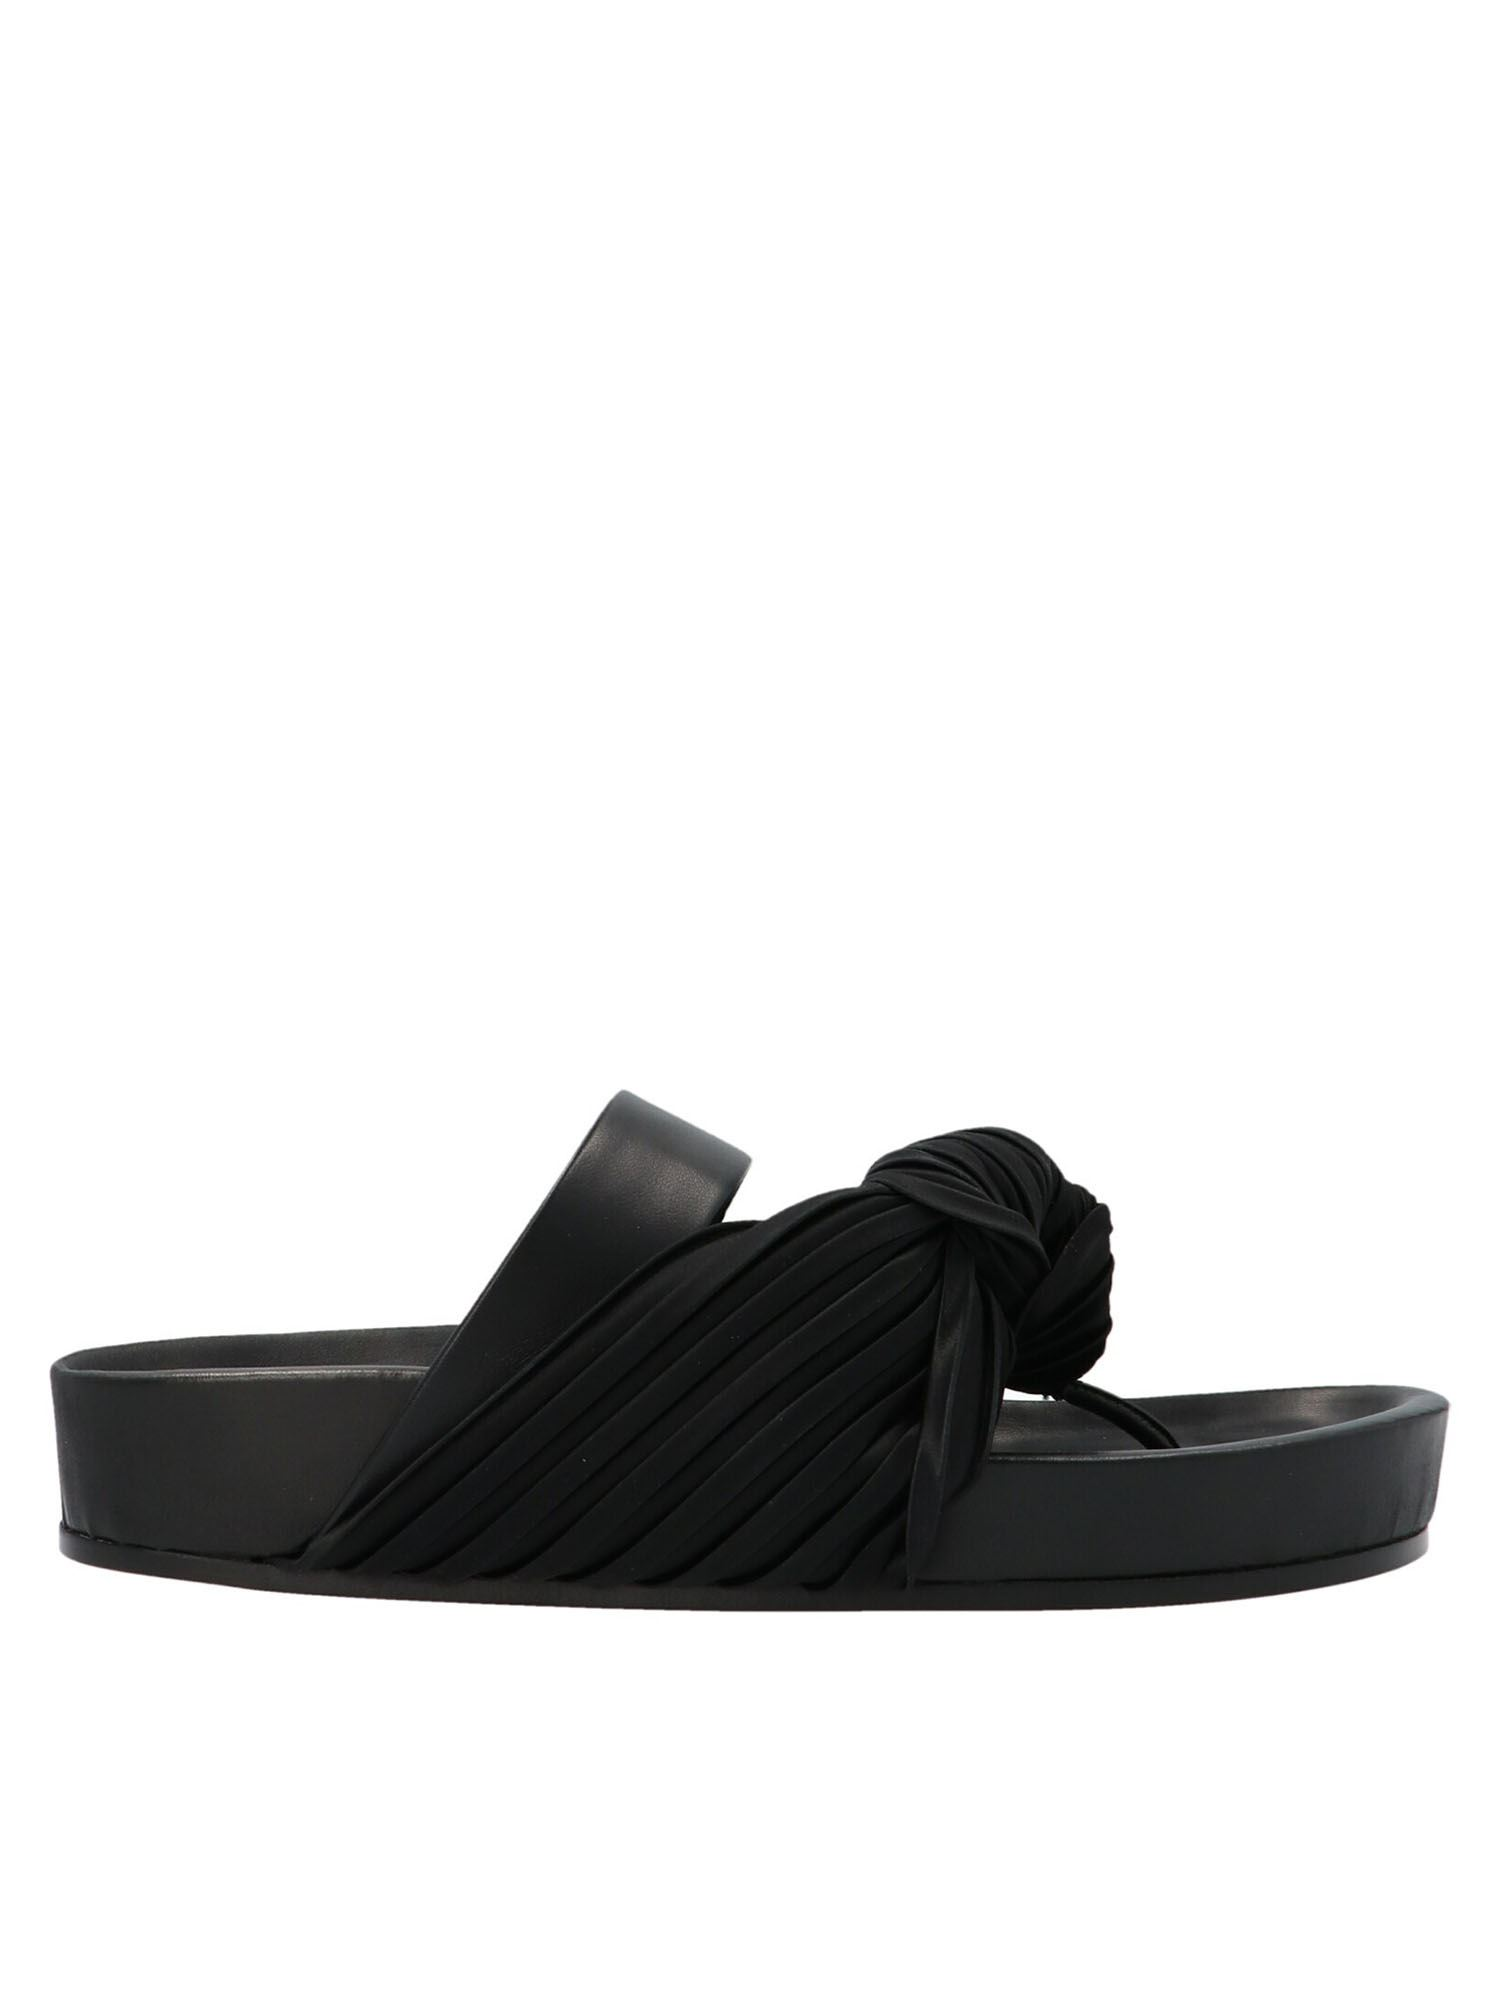 Jil Sander Leathers PLEATED FABRIC INSERT THONG SLIDES IN BLACK